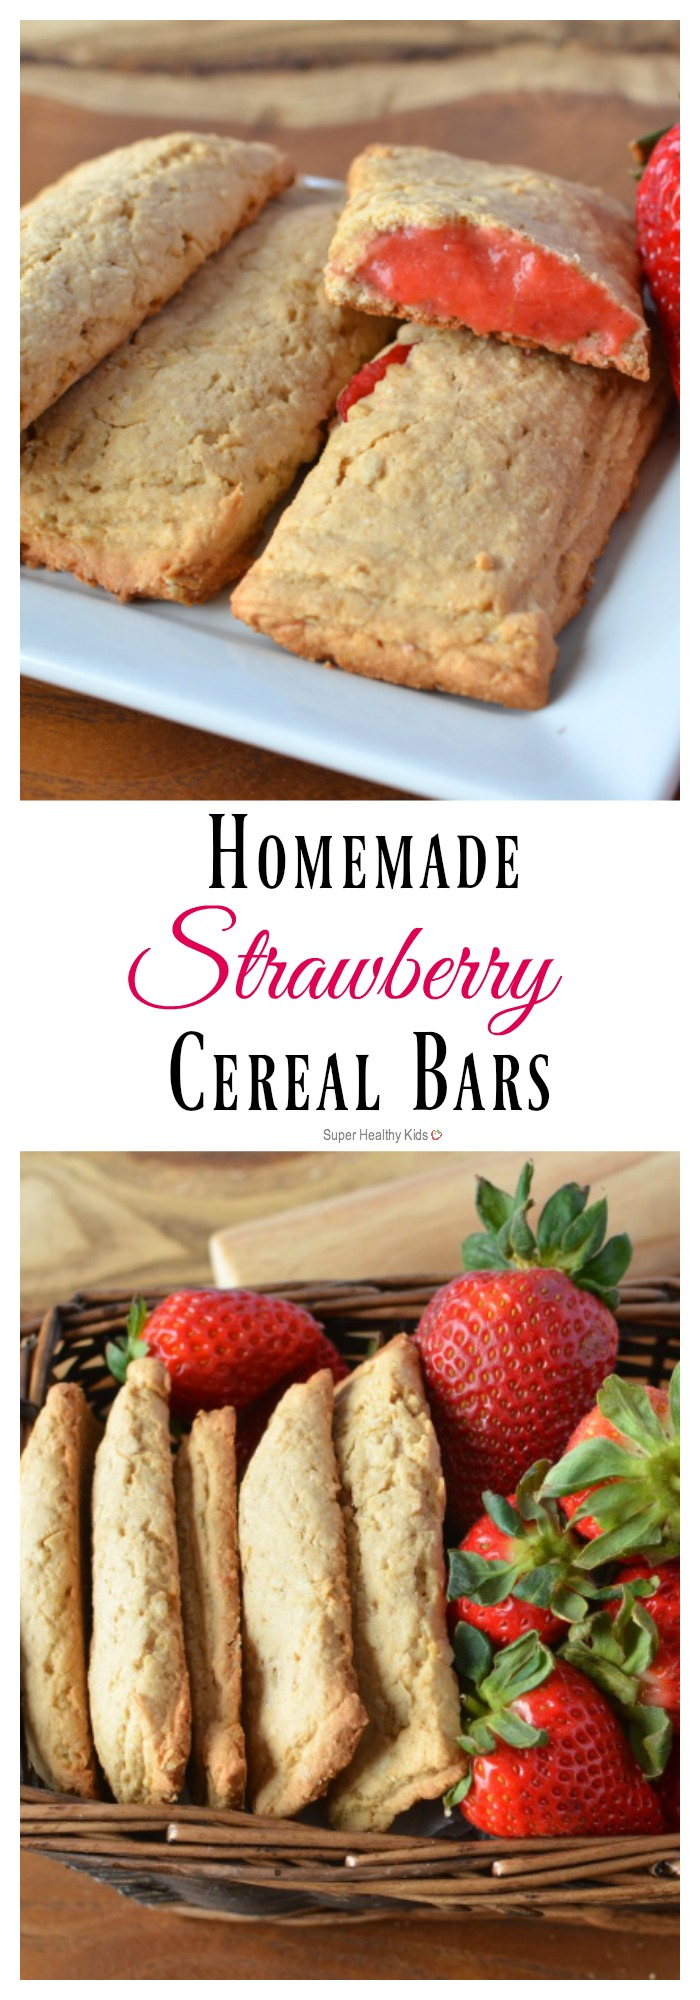 Homemade Strawberry Cereal Bars Recipe. Everyone loves our make at home version of cereal bars! http://www.superhealthykids.com/homemade-cereal-bars/